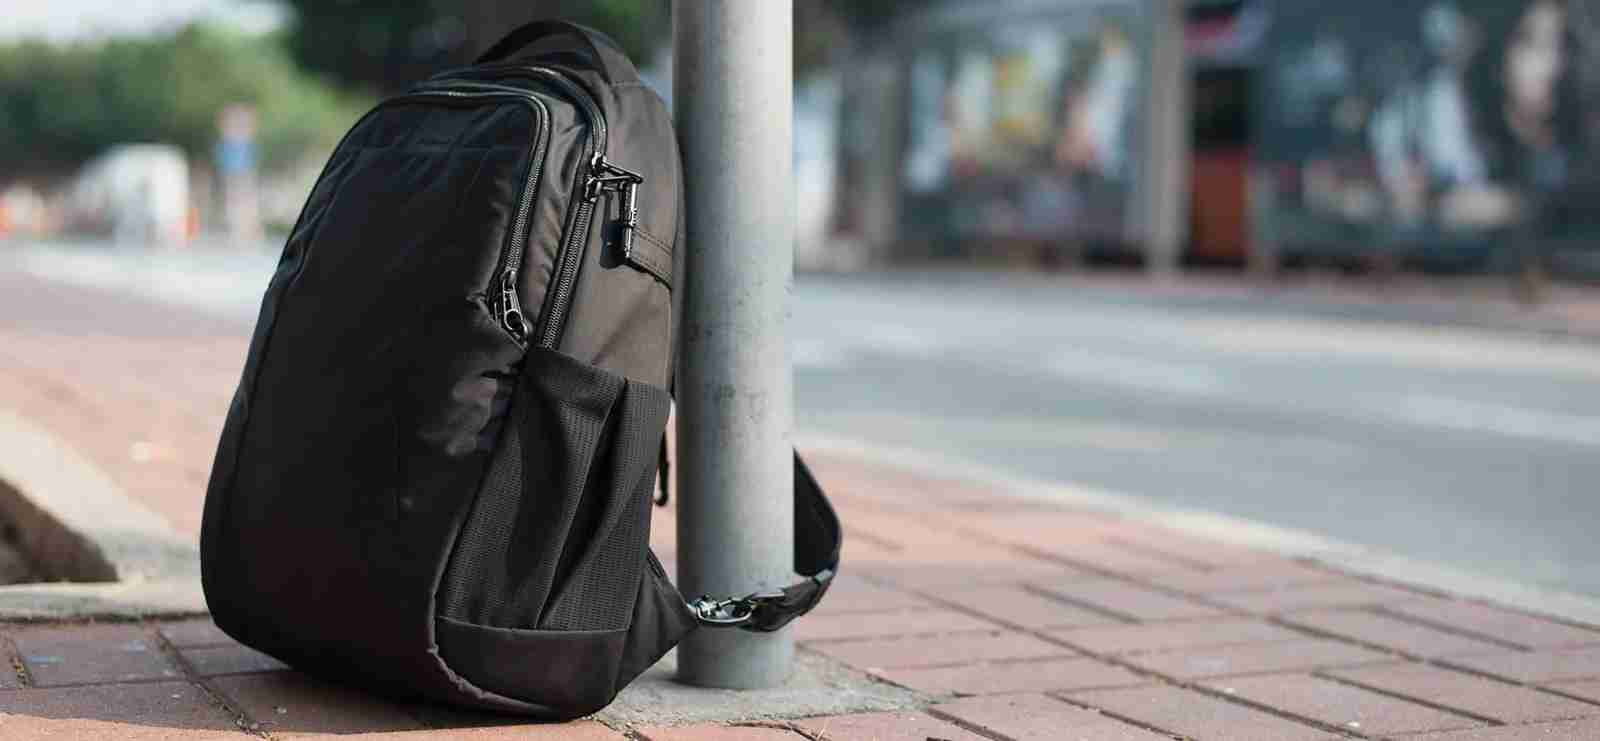 There are plenty of products out there to keep your items from getting stolen, like the PacSafe bag above, which have straps and locking cables to secure your bag to any anchor. (Image via PacSafe.com)